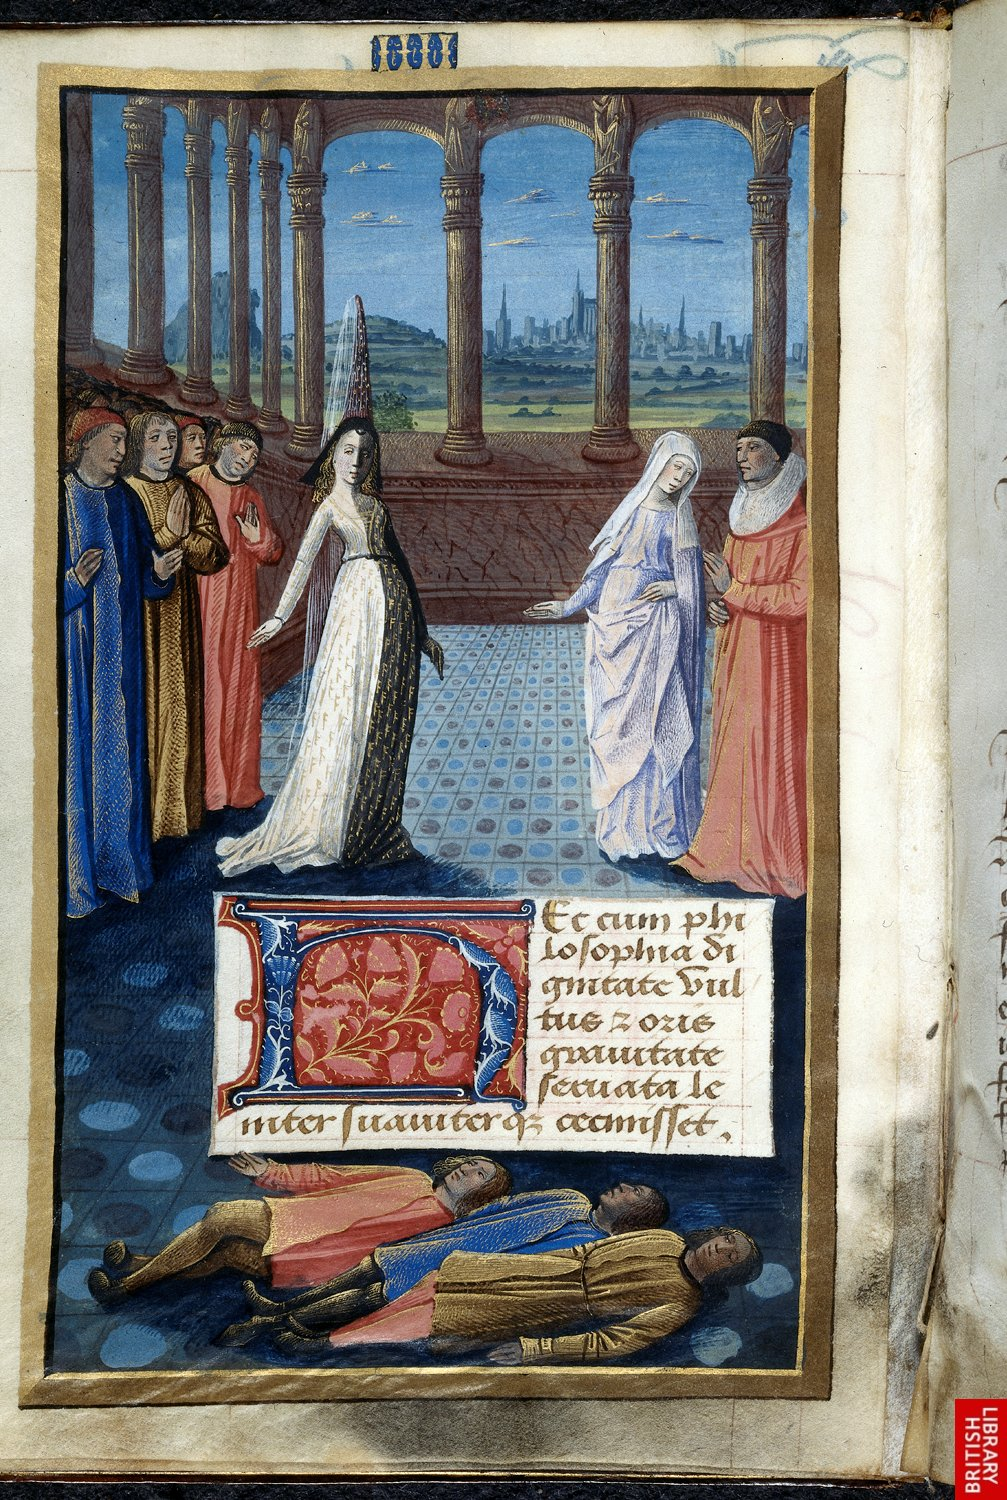 1477 - from Livre de Boece de Consolacion, book 2 - attributed to Jean Colombe